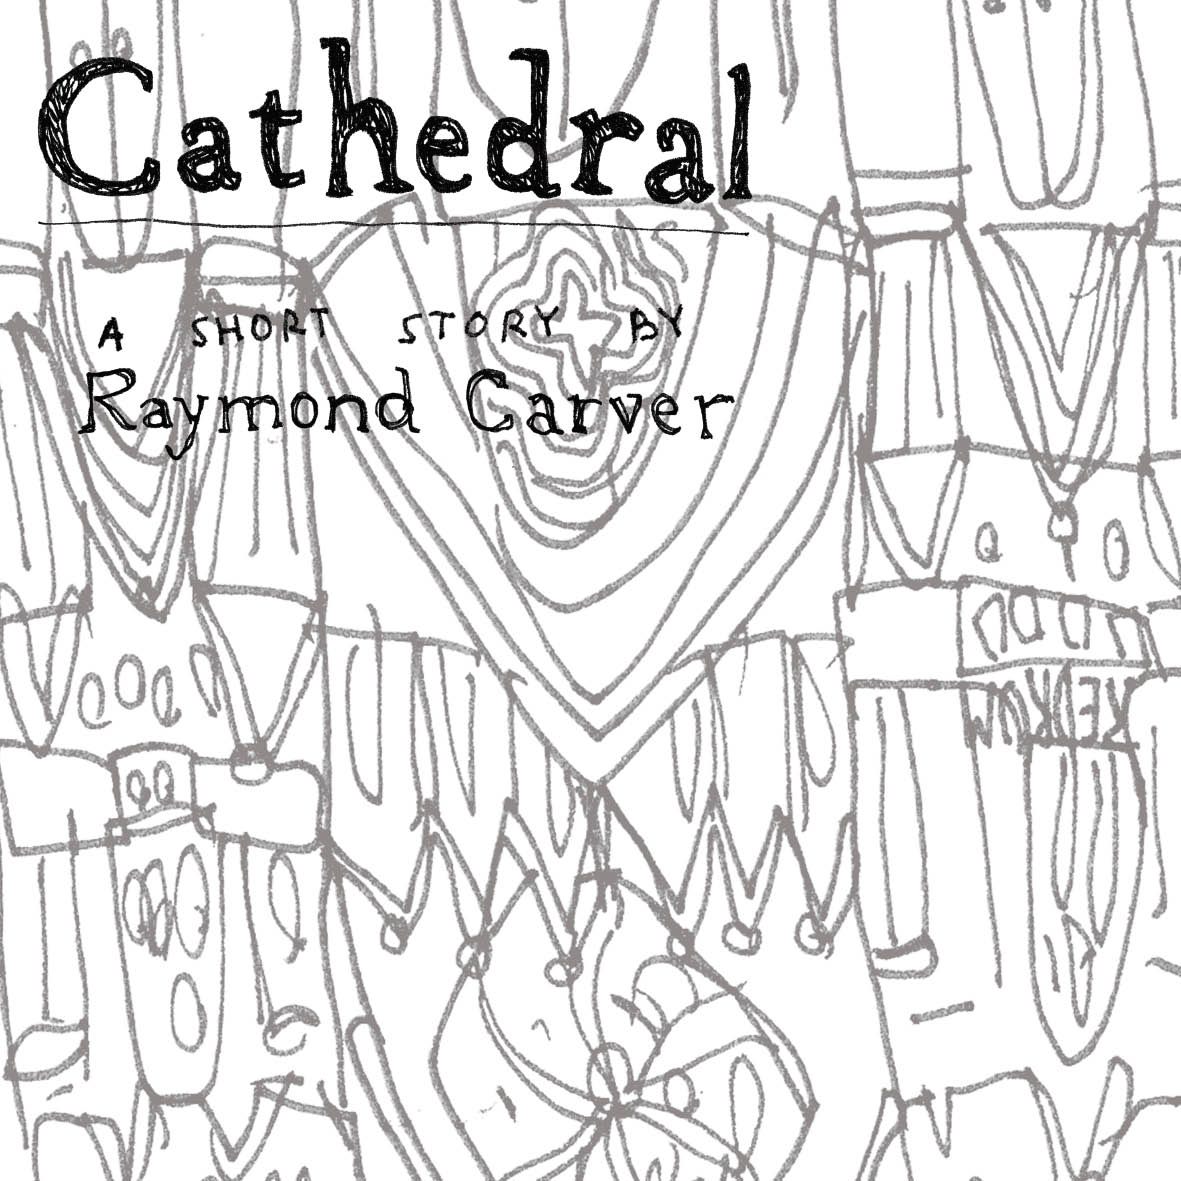 essays on raymond carver cathedral Literary analysis of cathedral by raymond carver to analyze and discuss those literary characteristics we mentioned in this essay bibliography carver's cathedral.